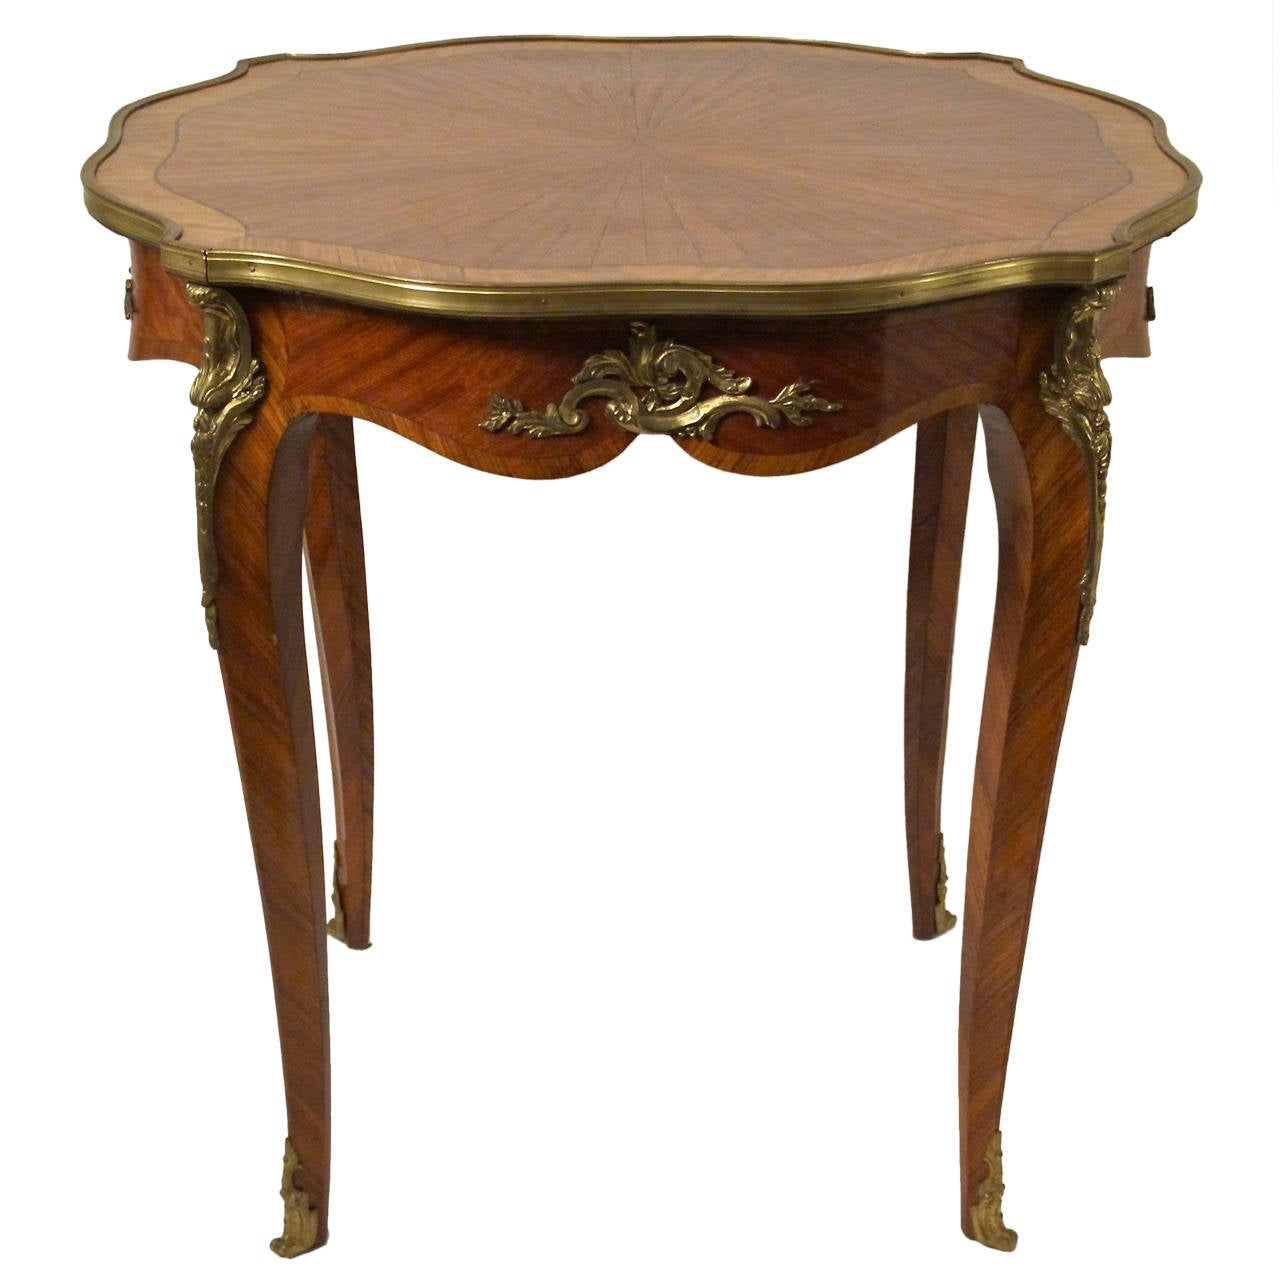 French louis xvi style side table for sale at 1stdibs for Table in french